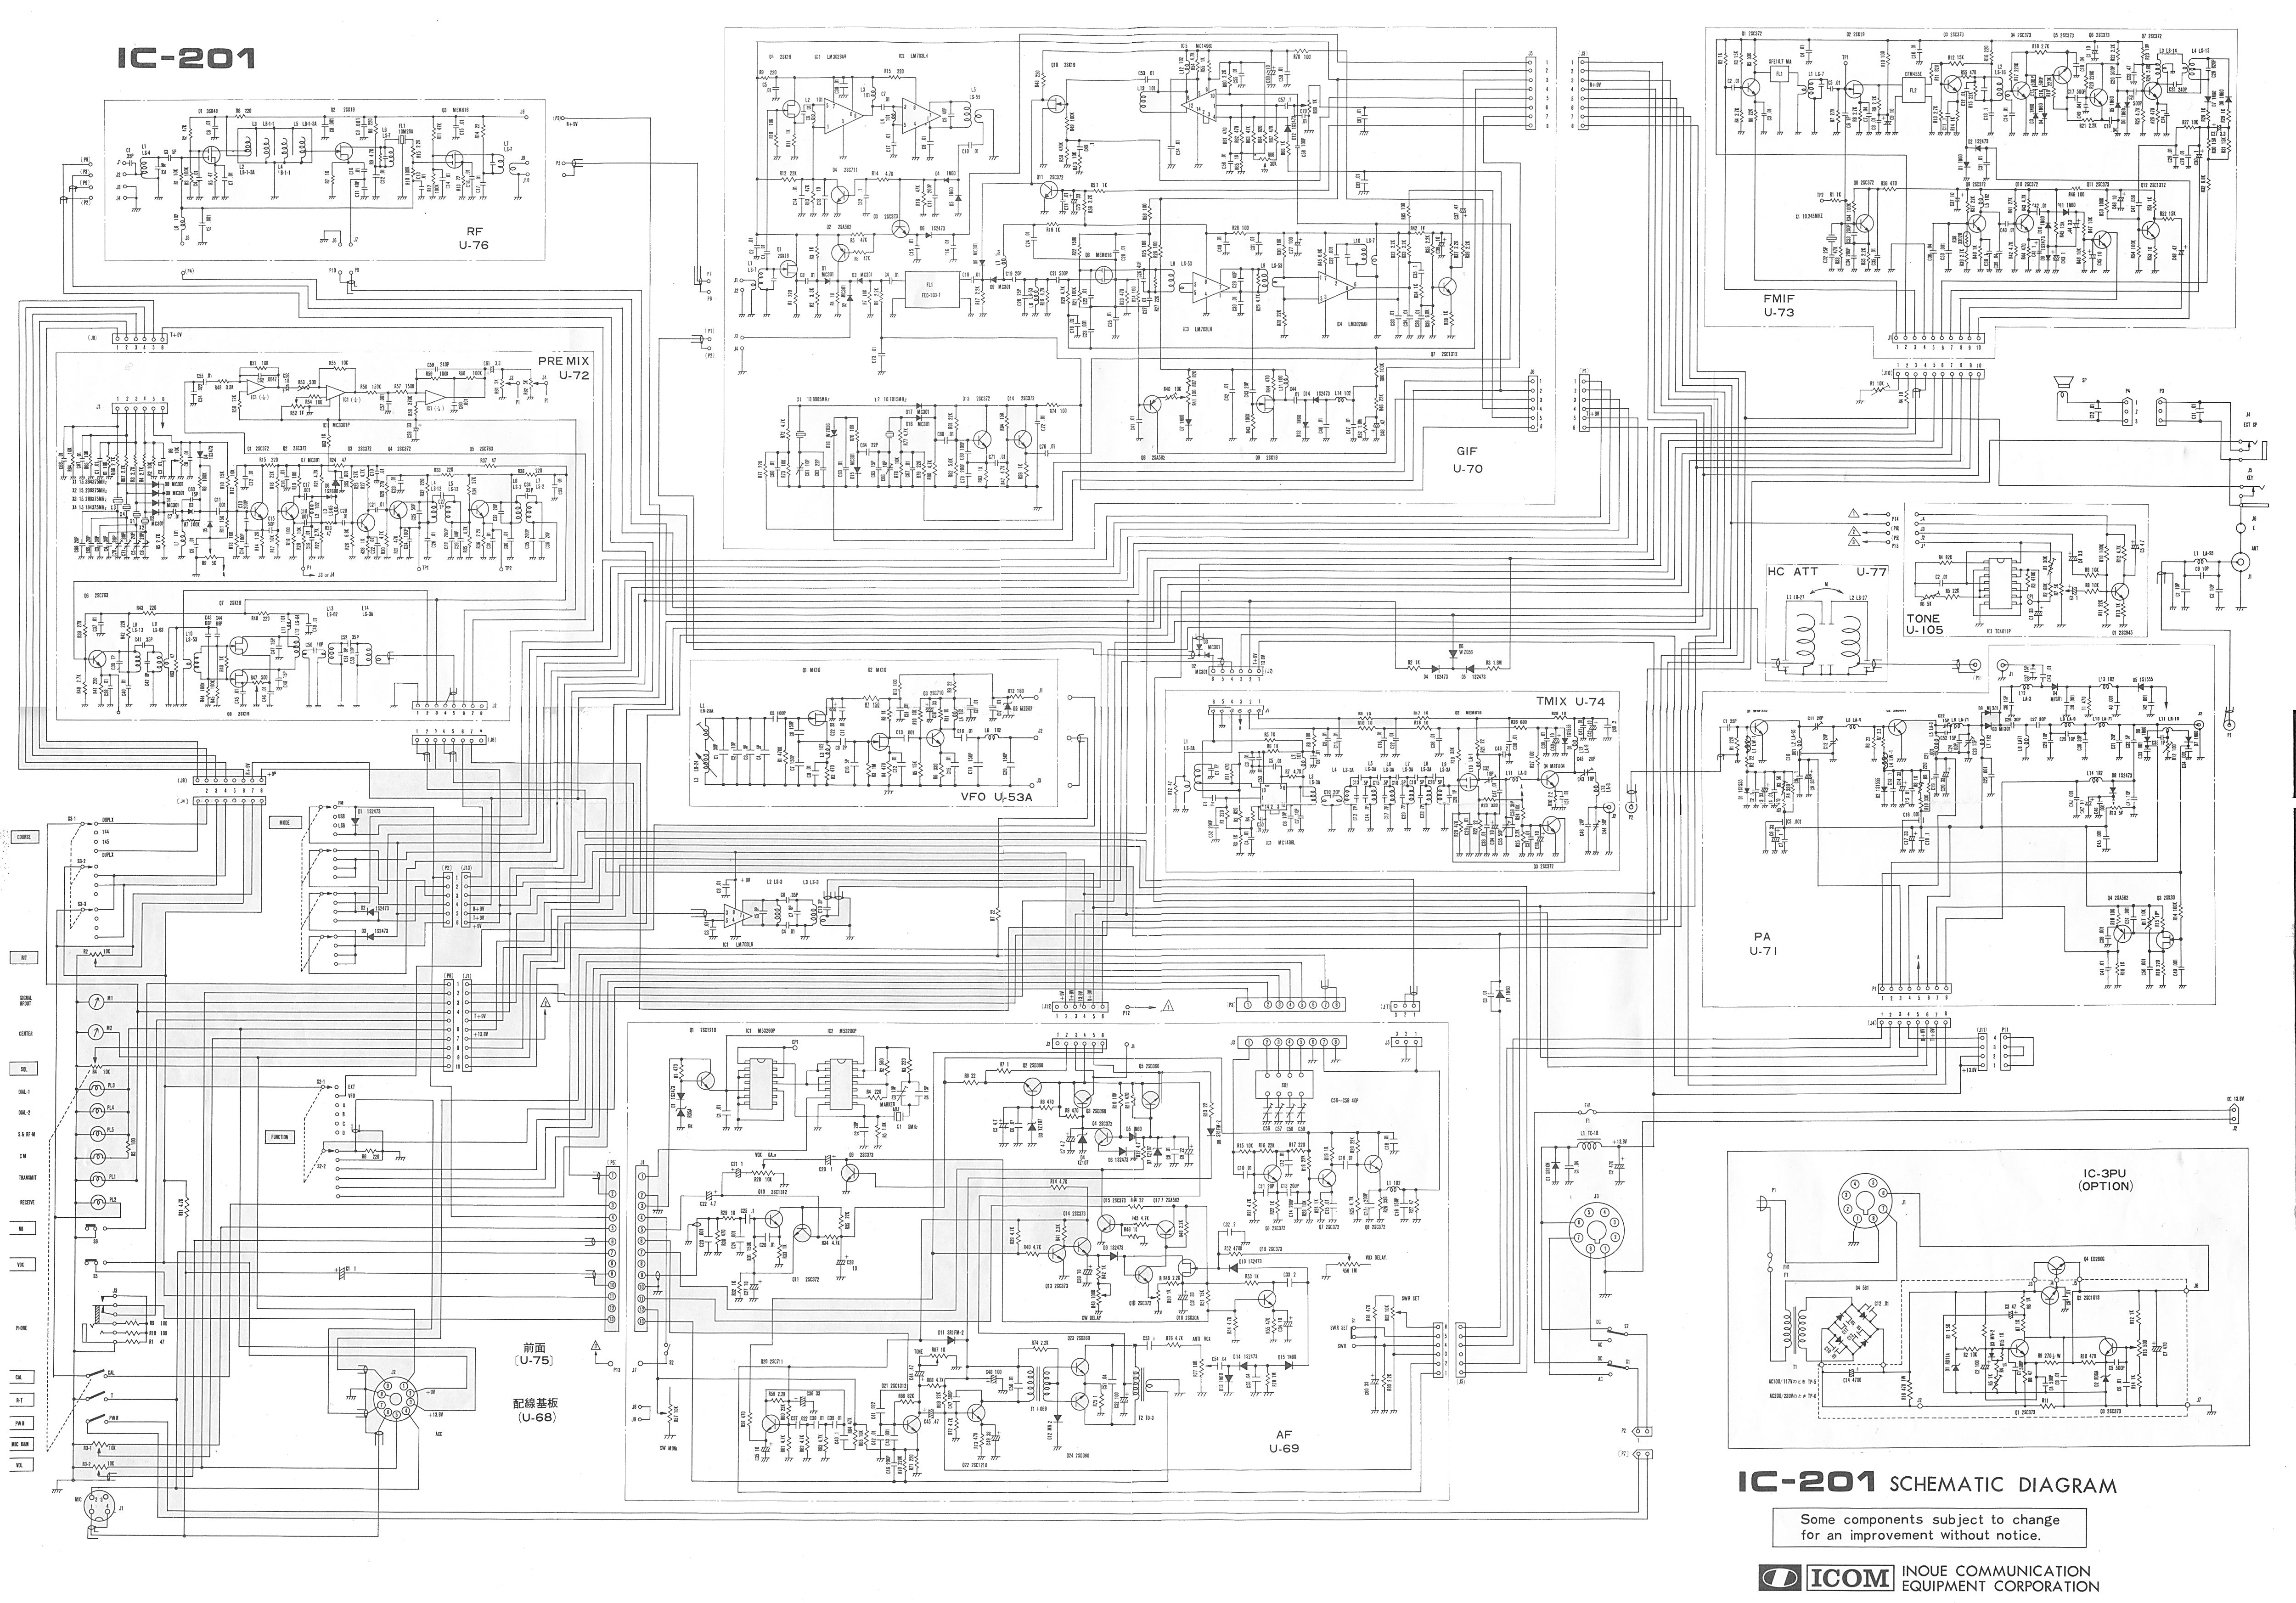 Thermostat Wiring Diagram As Well 1993 Buick Century Cooling System